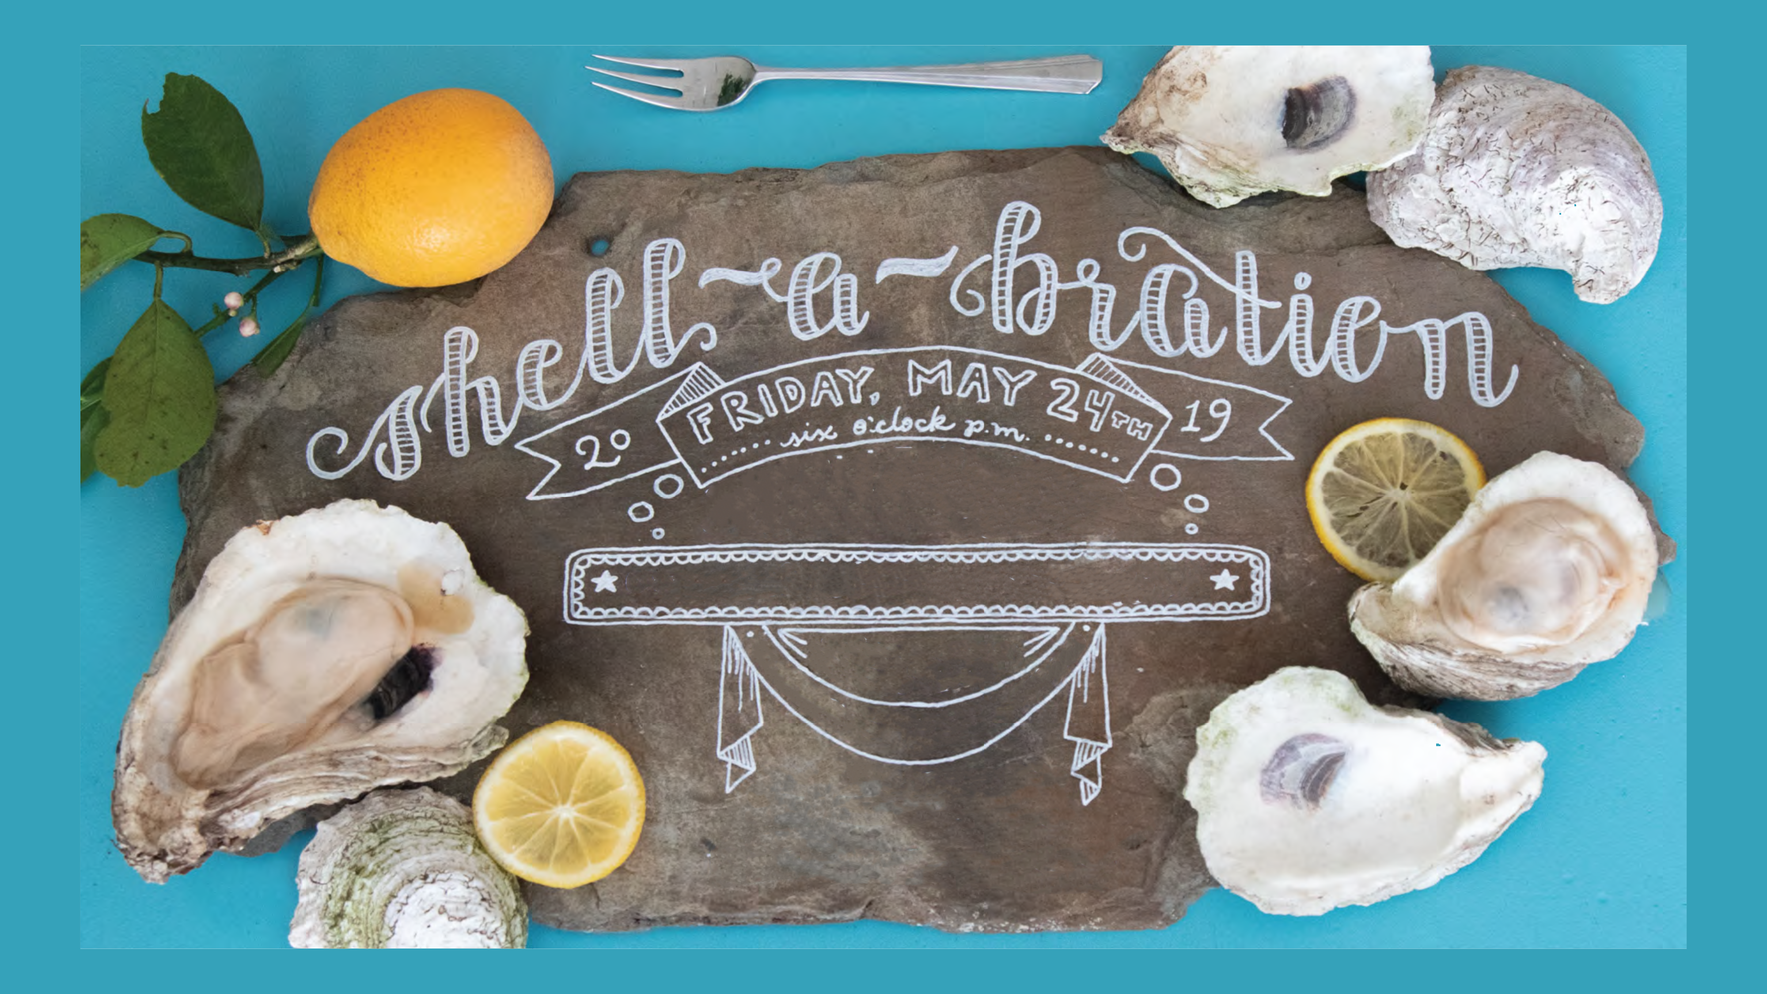 Second Annual Shell-A-Bration image